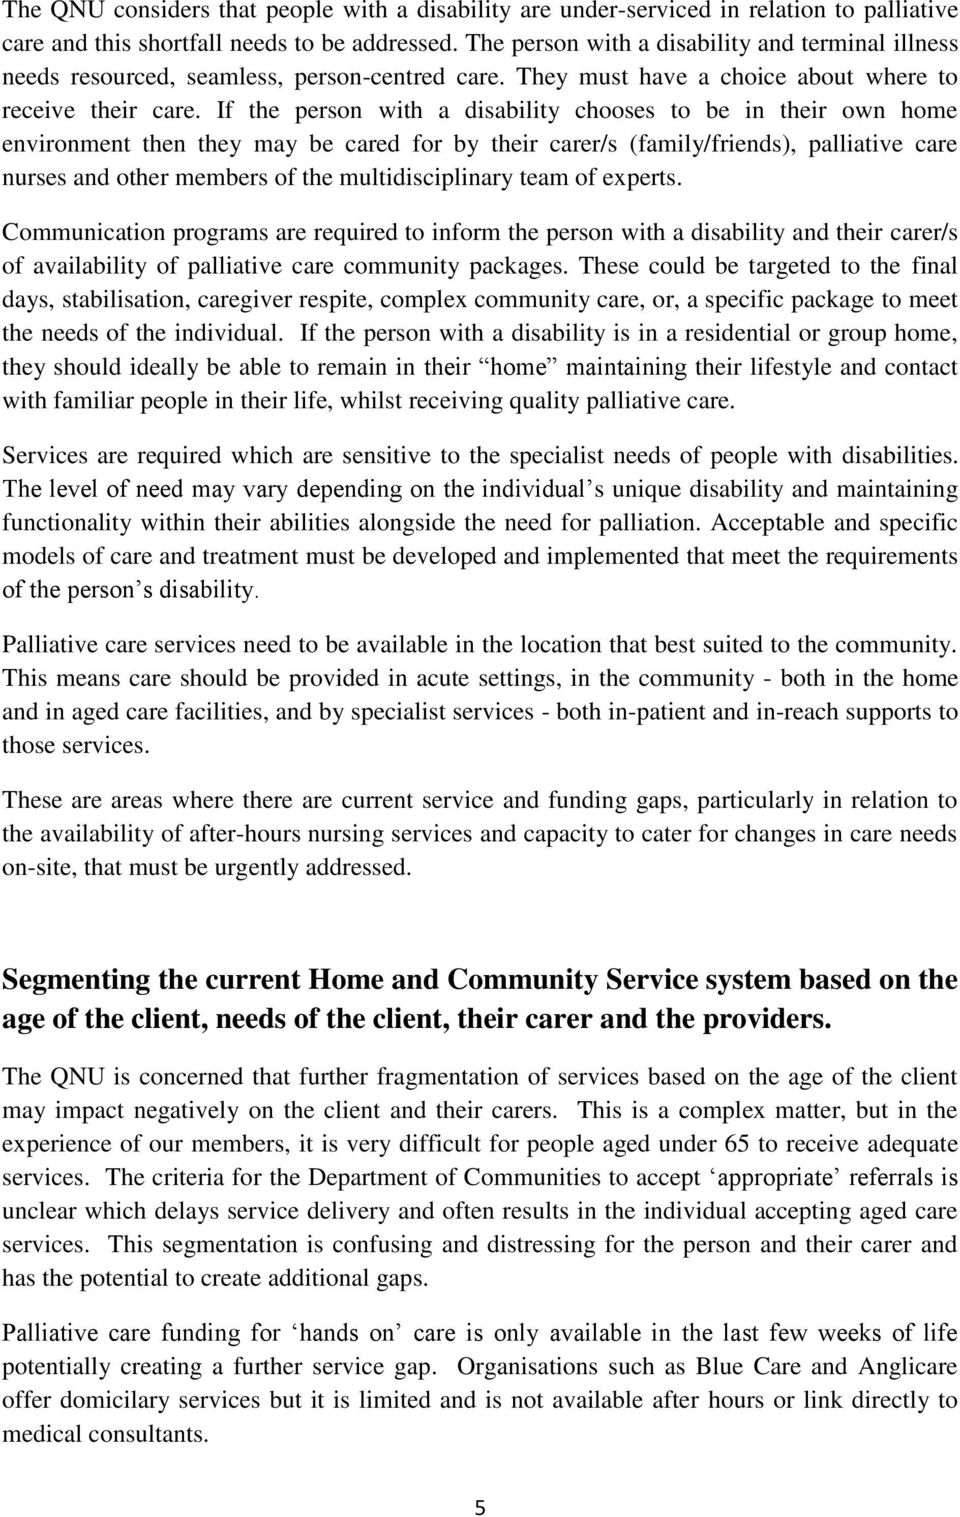 If the person with a disability chooses to be in their own home environment then they may be cared for by their carer/s (family/friends), palliative care nurses and other members of the